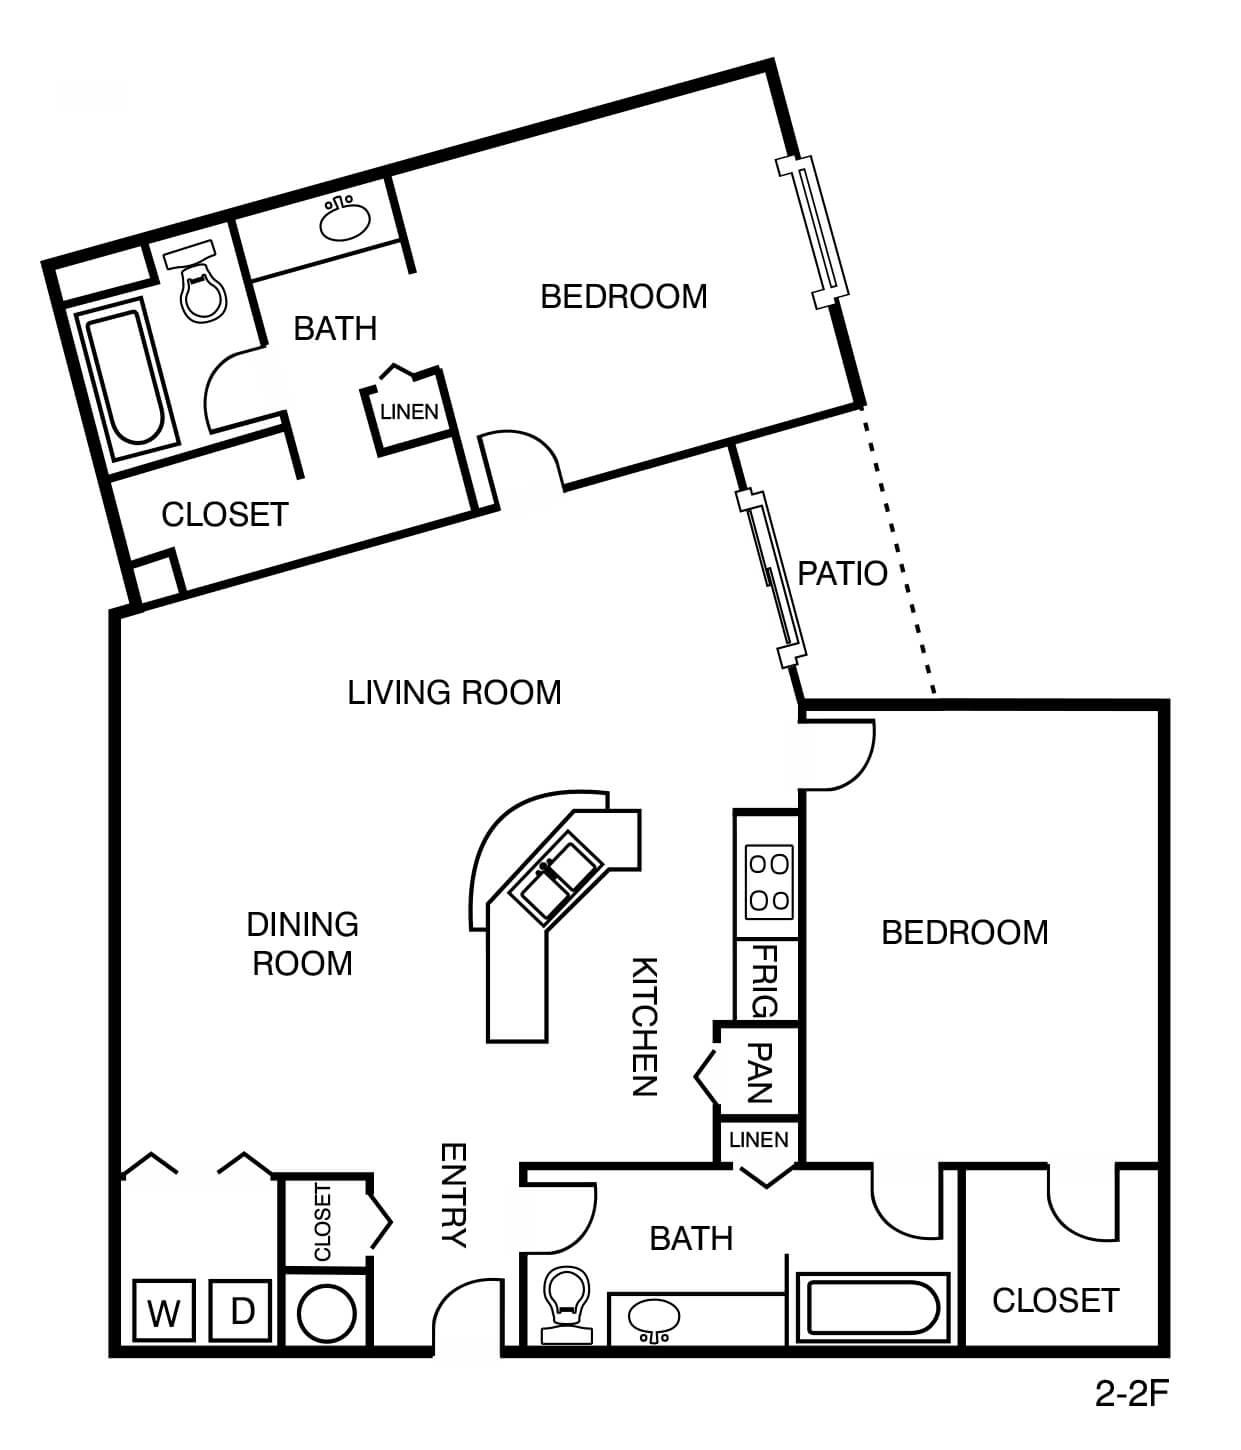 2 Bed 2 bath - 1161 sq ft.